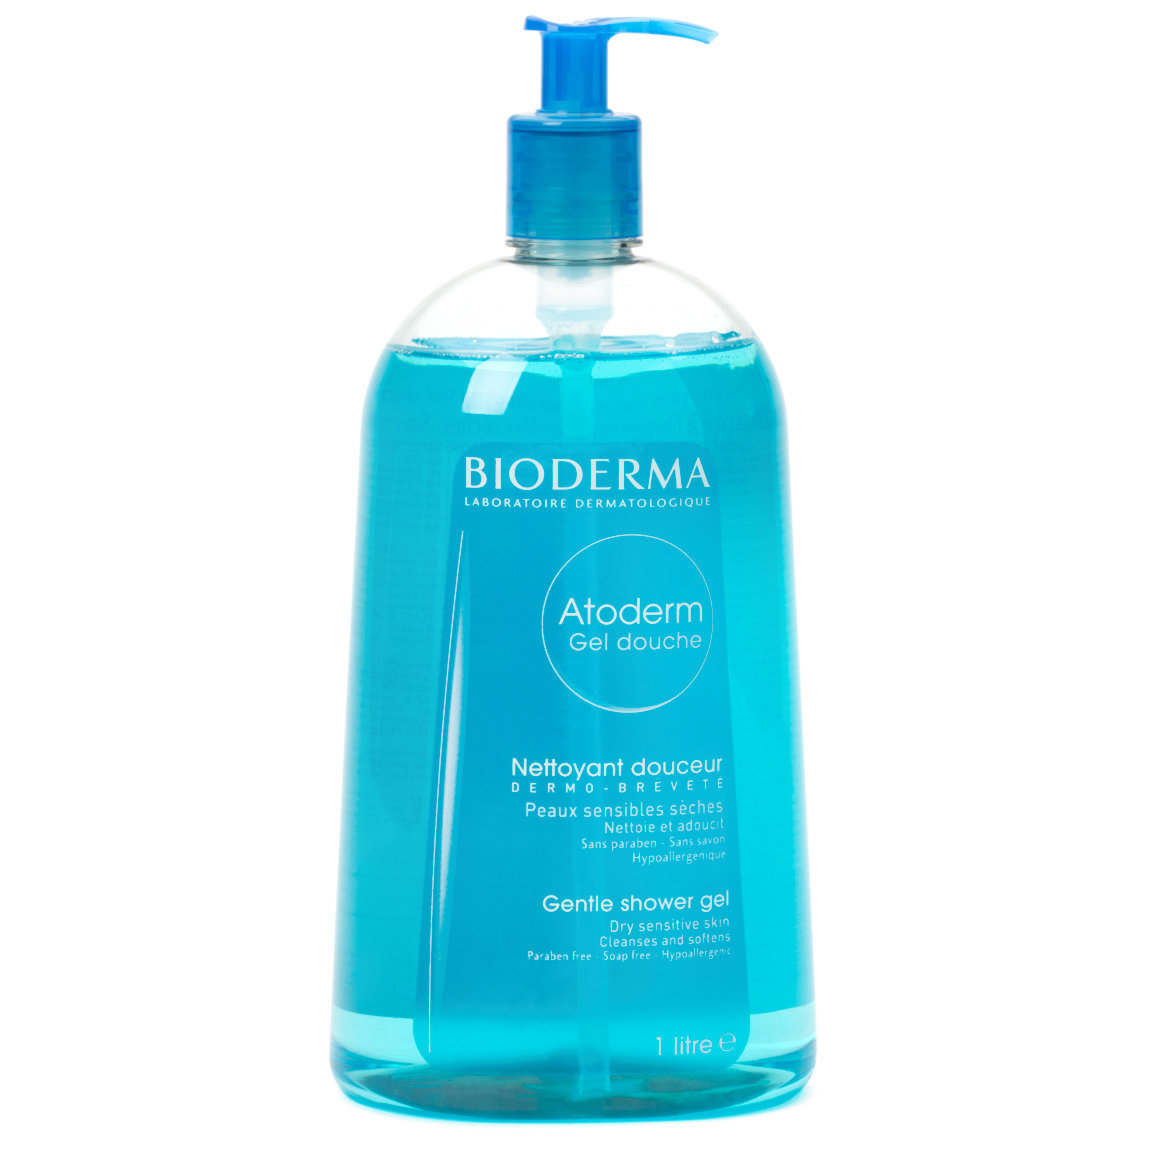 Bioderma Atoderm Shower Gel 1 L product swatch.